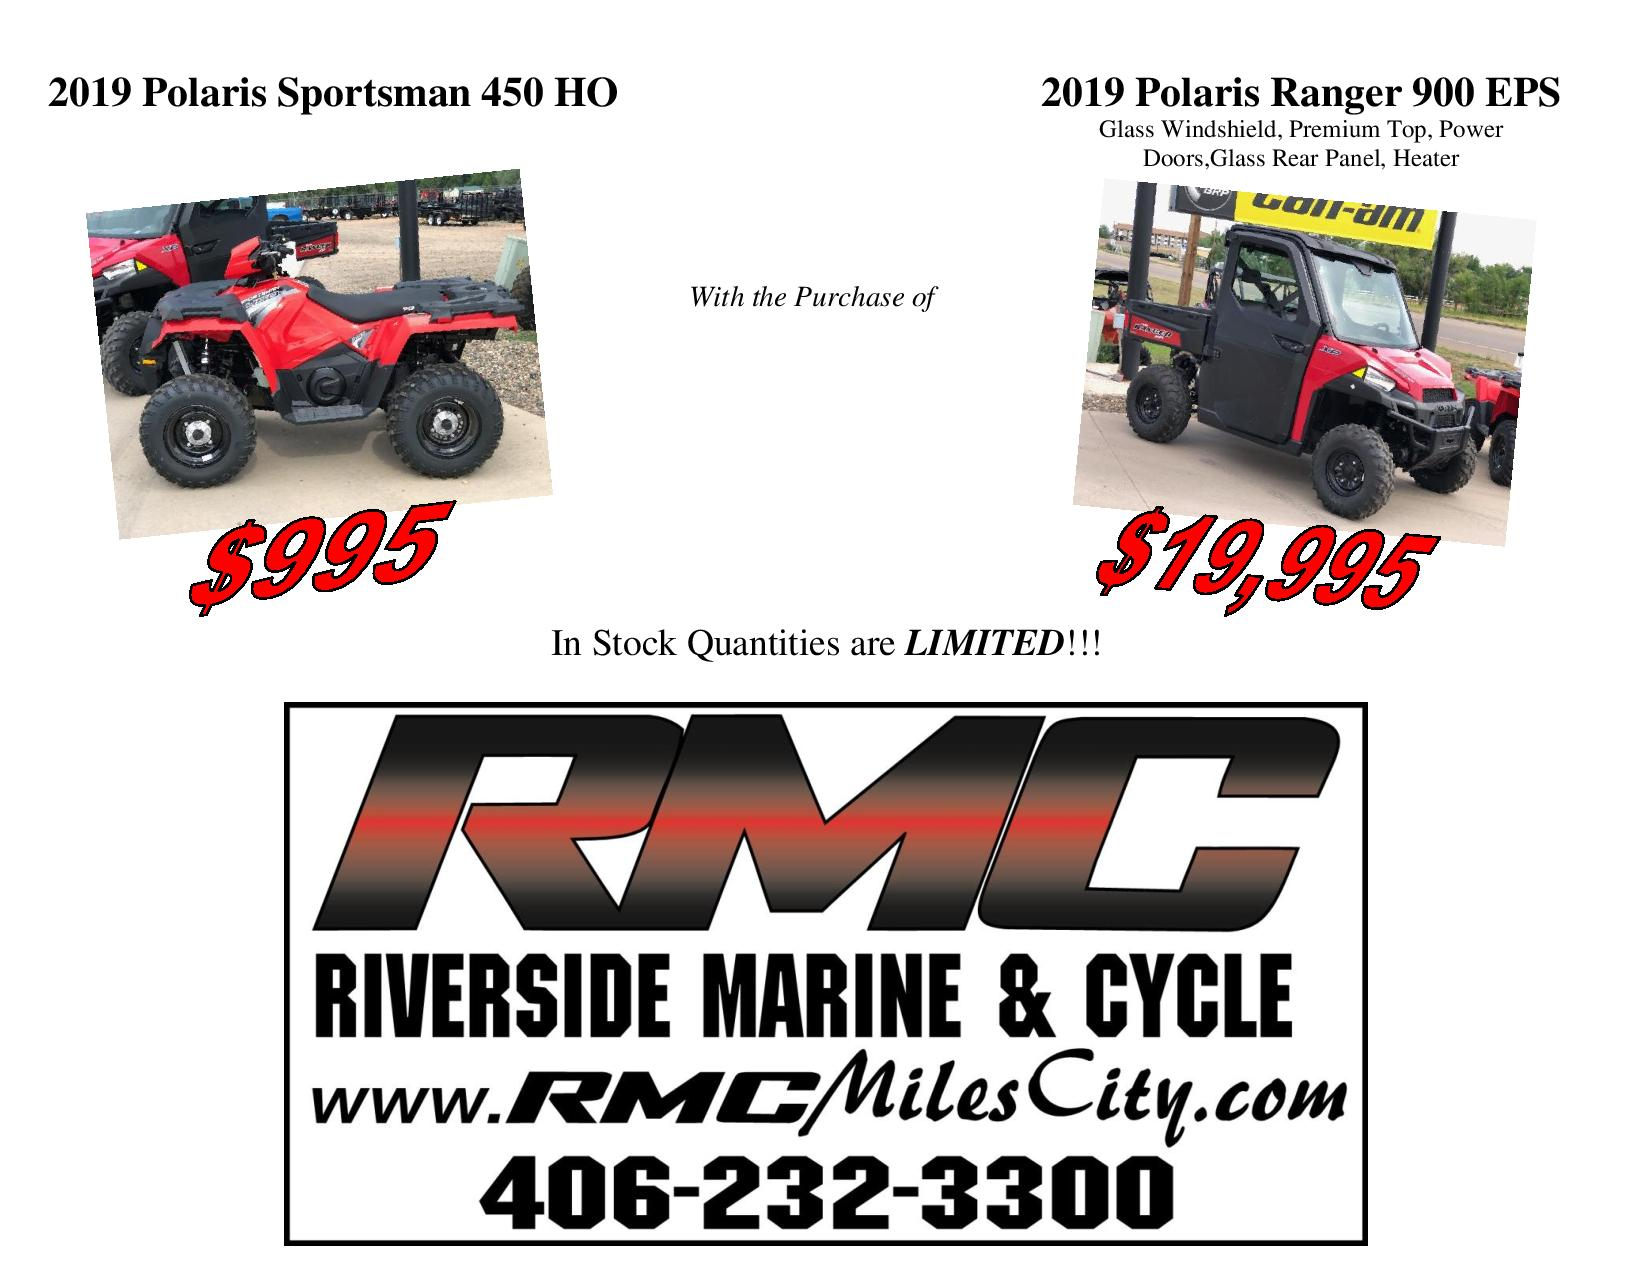 Inventory Riverside Marine & Cycle Miles City, MT (406) 232-3300